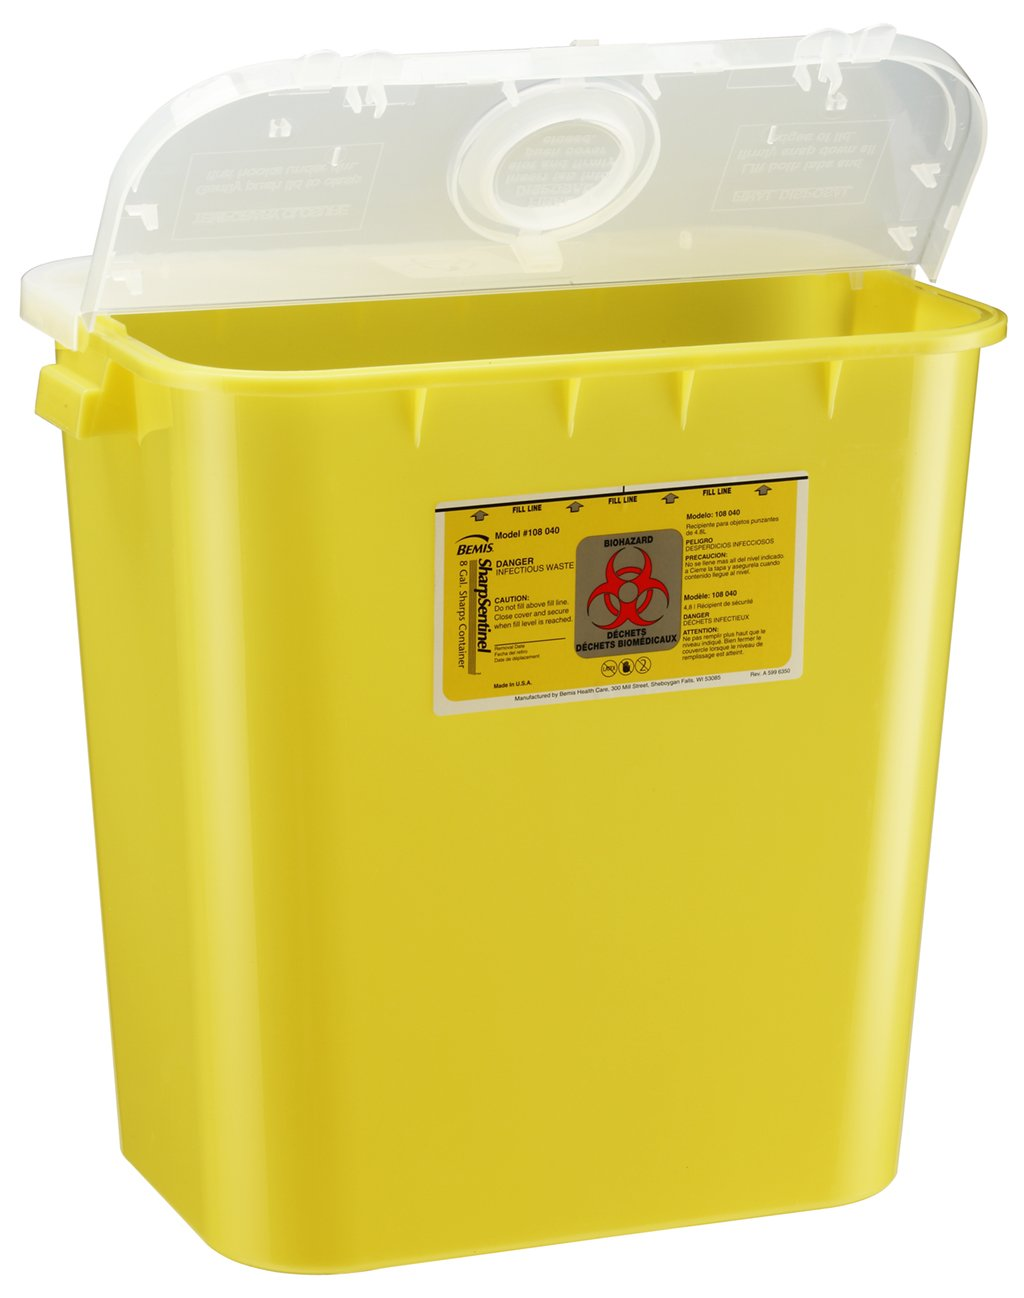 Bemis Healthcare 108040-10 8 gal Sharps Container, Yellow (Pack of 10)